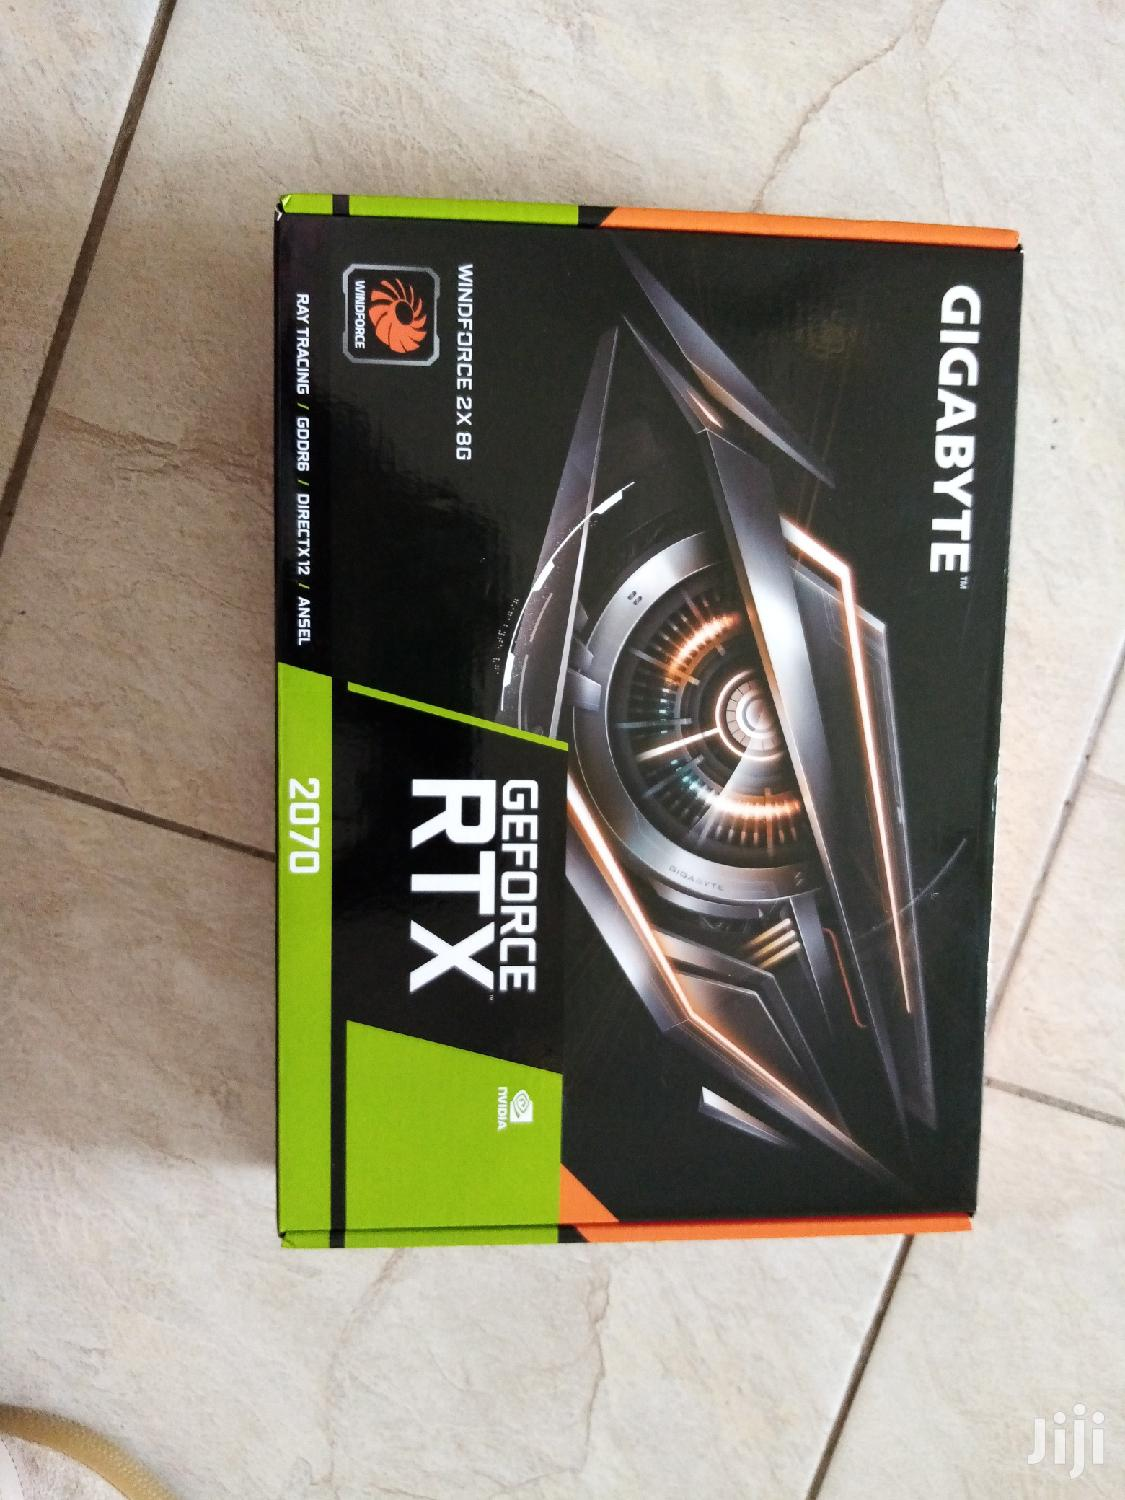 Archive: Gigabyte Rtx Nvidia 2070 8gb Graphic Card